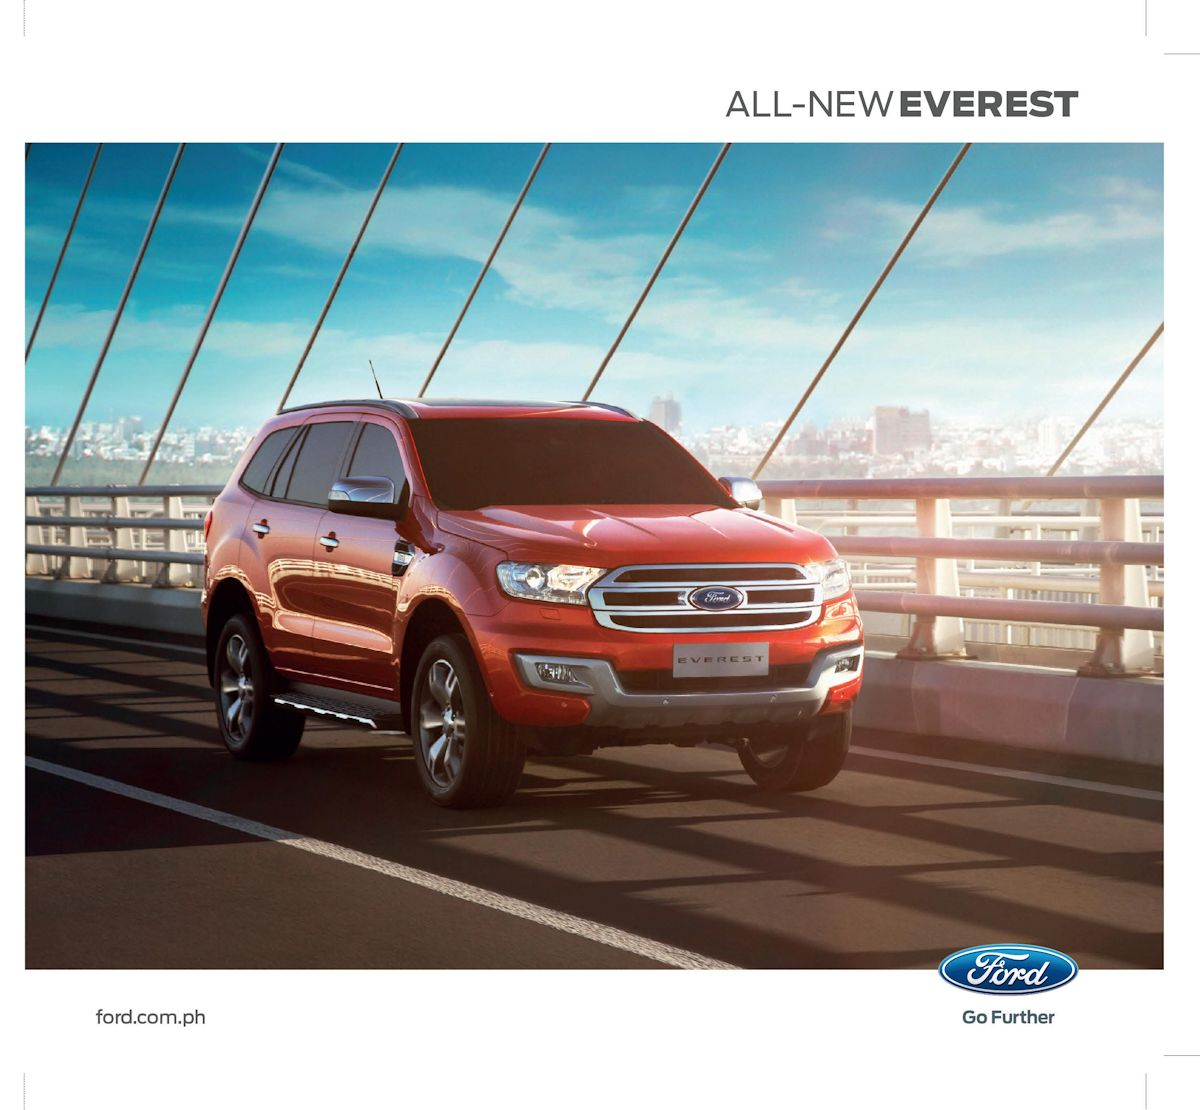 updated: ford philippines reveals 2015 everest specs, model